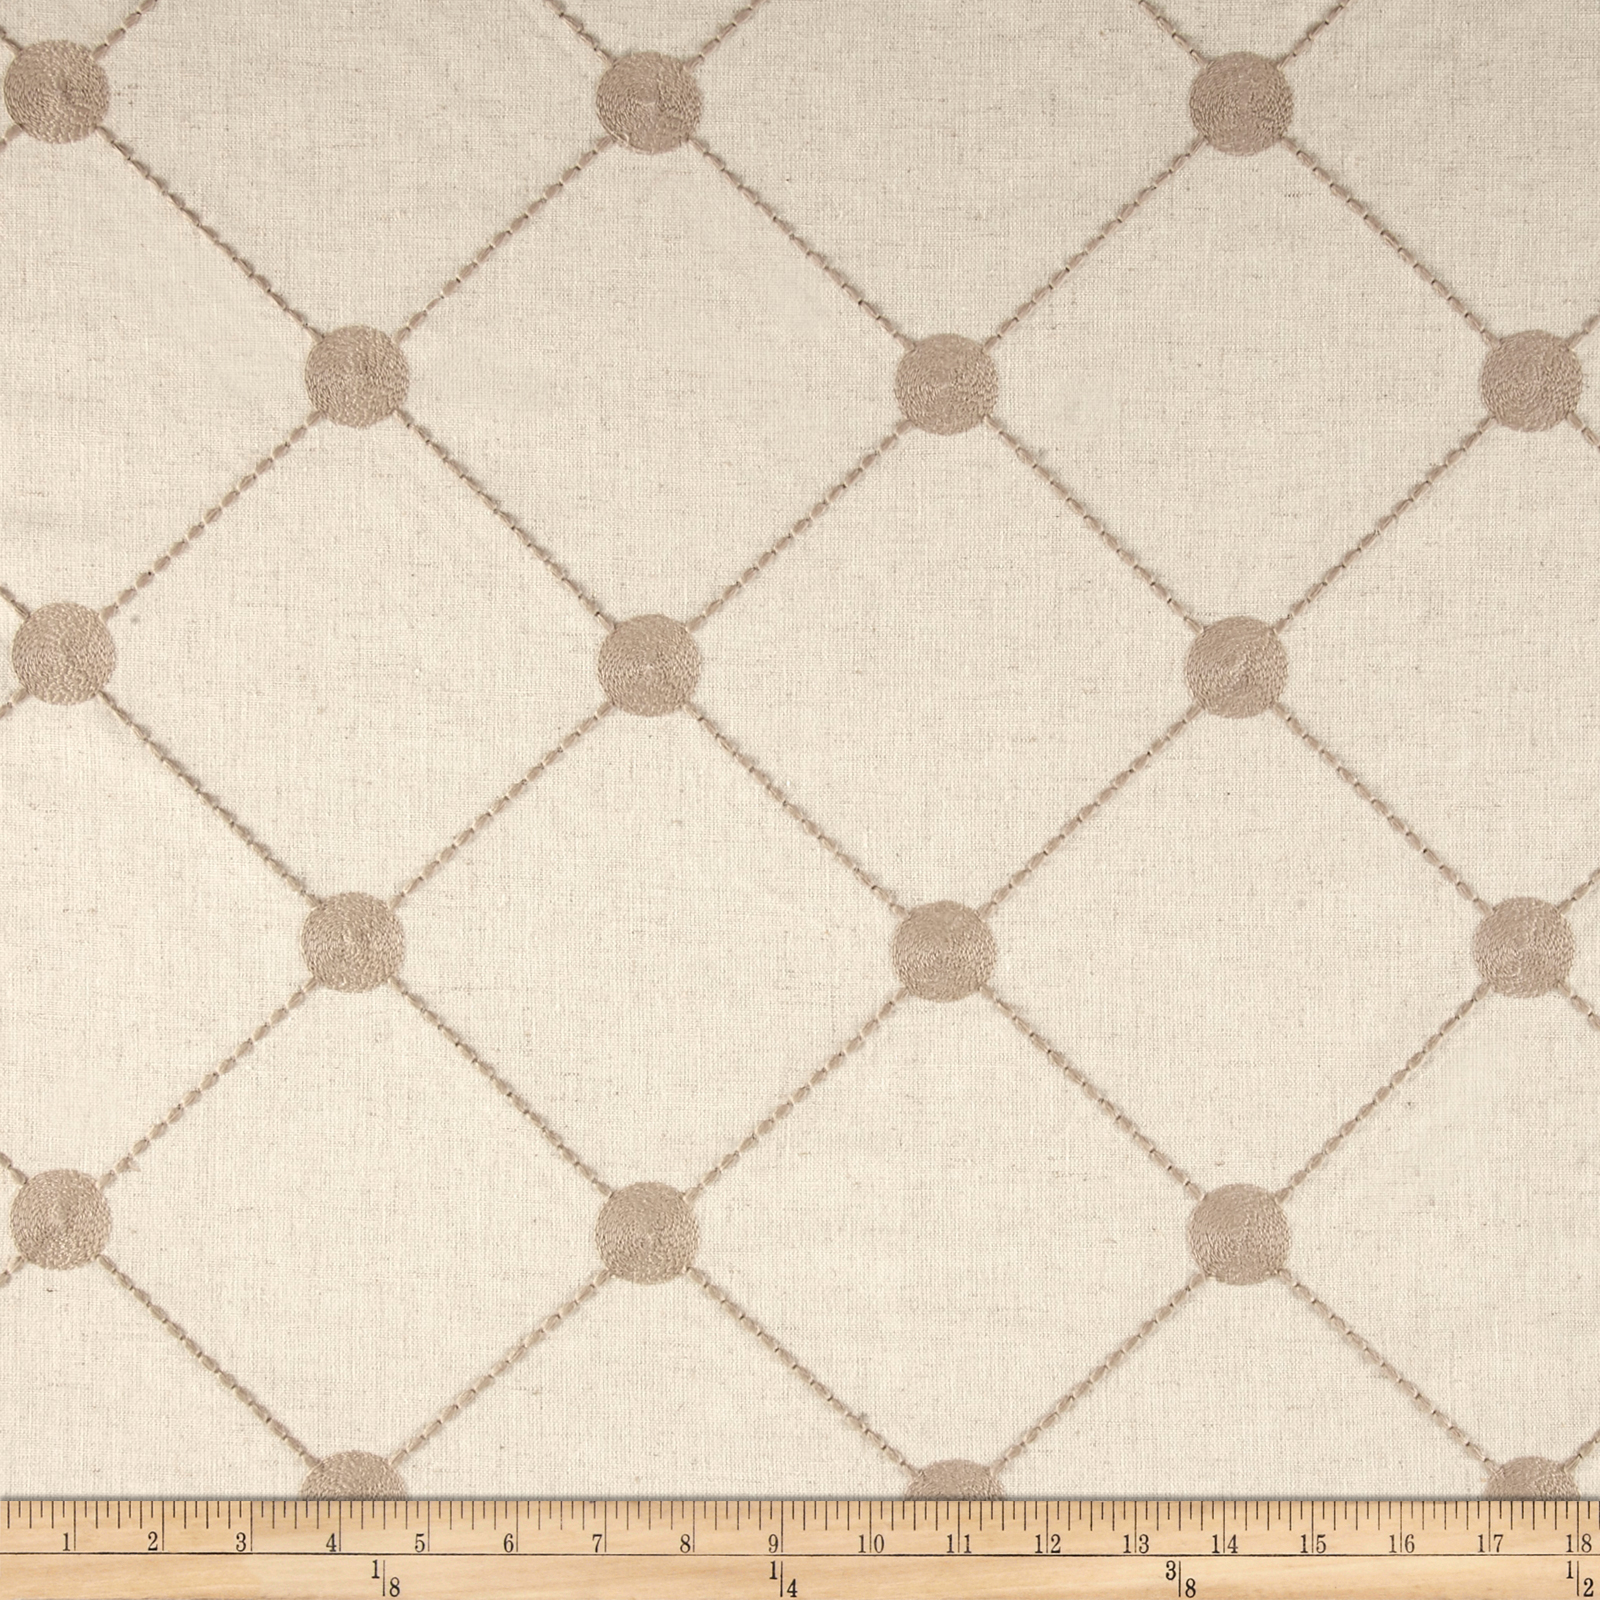 Kelly Ripa Home Fanfare Embroidered Pebble Fabric by Waverly in USA